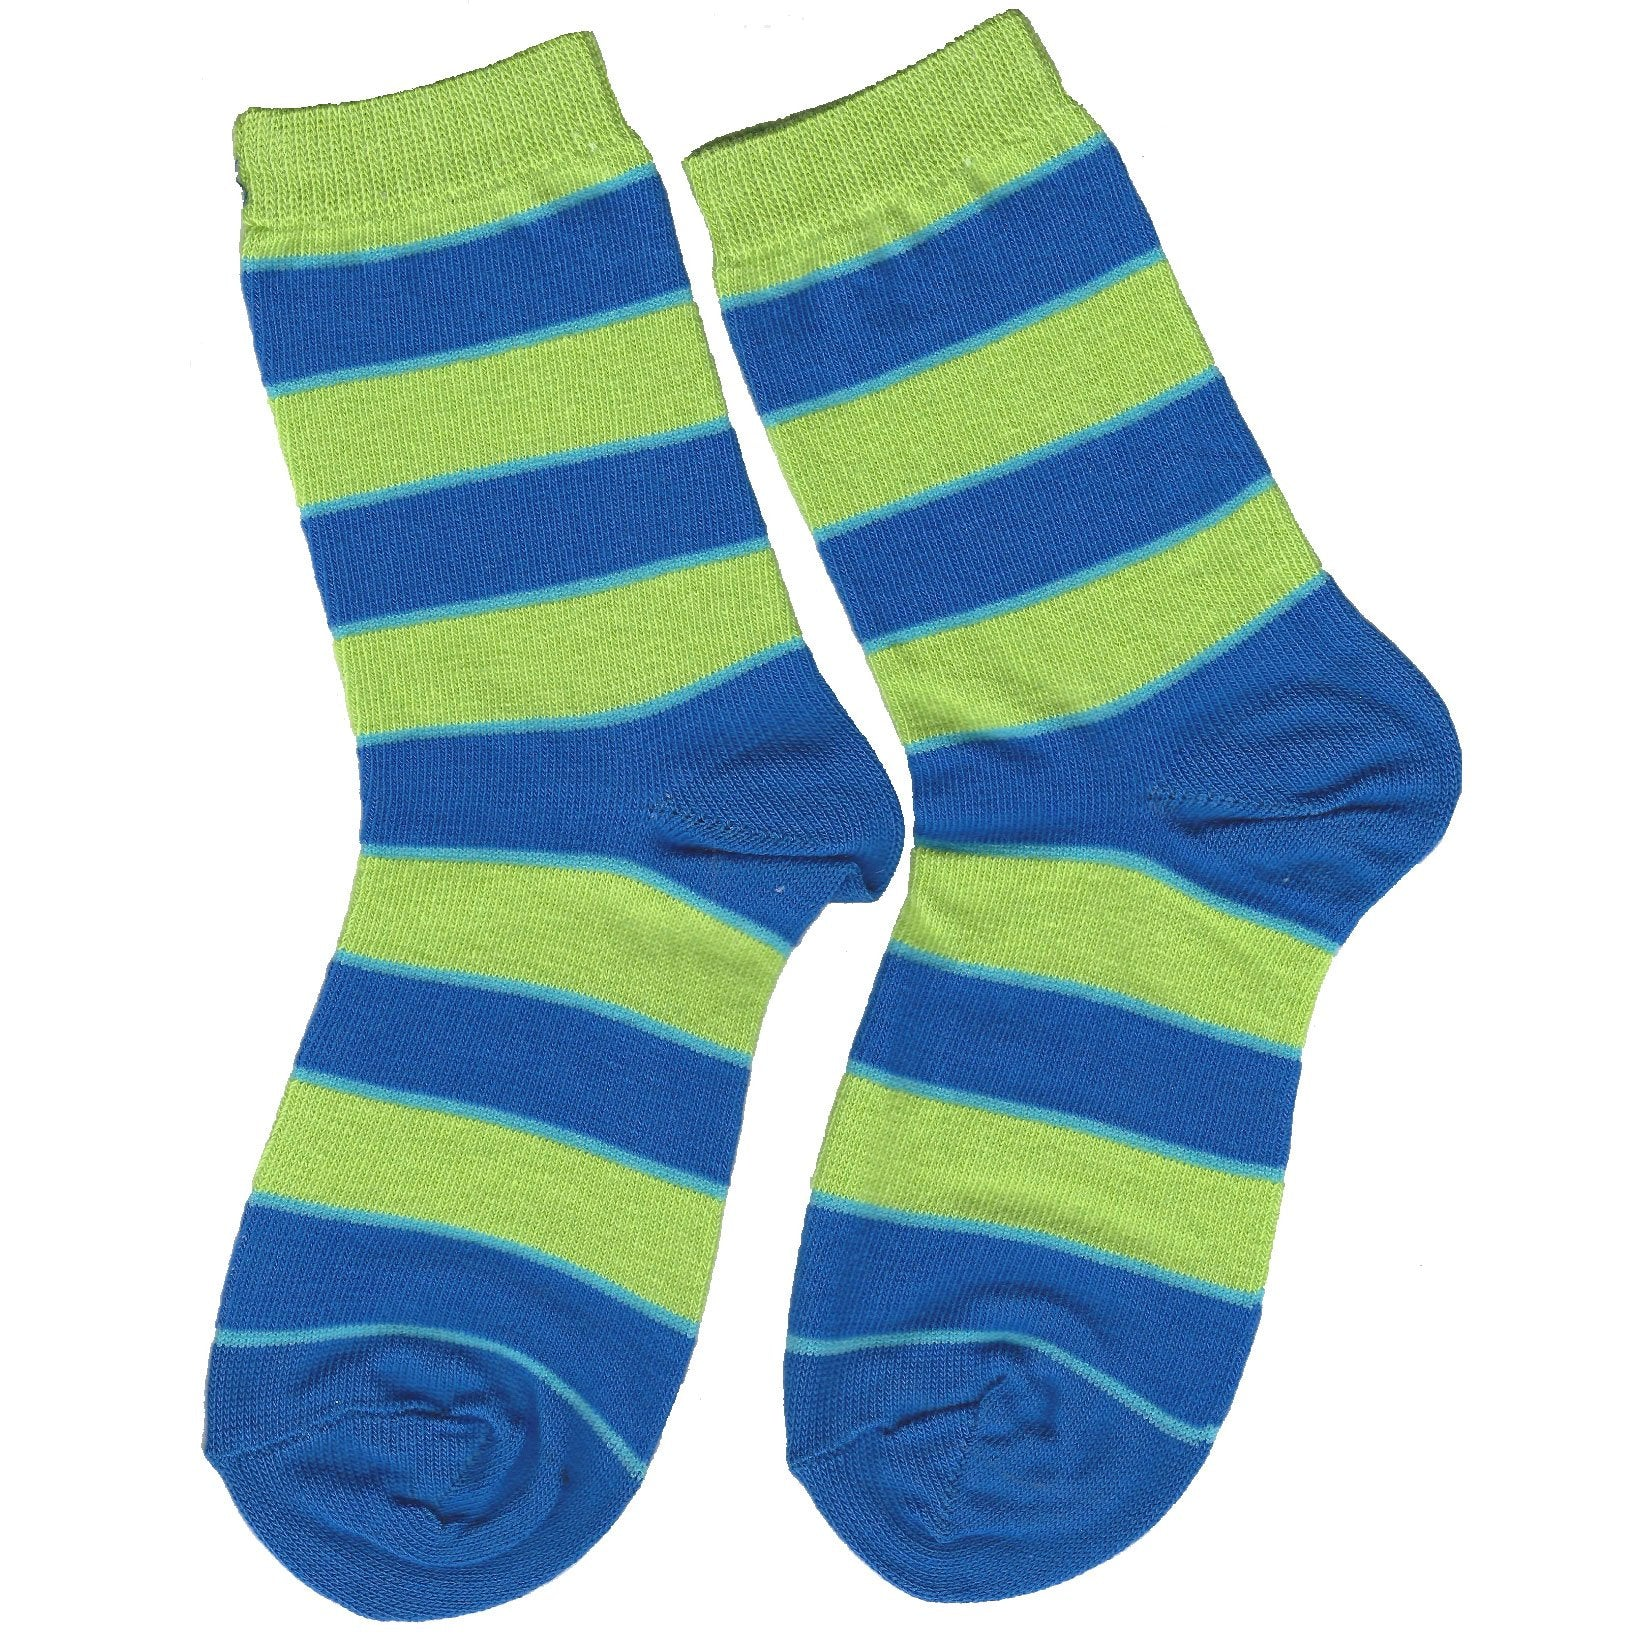 Boys Lime Striped Crew Socks by Jefferies Socks